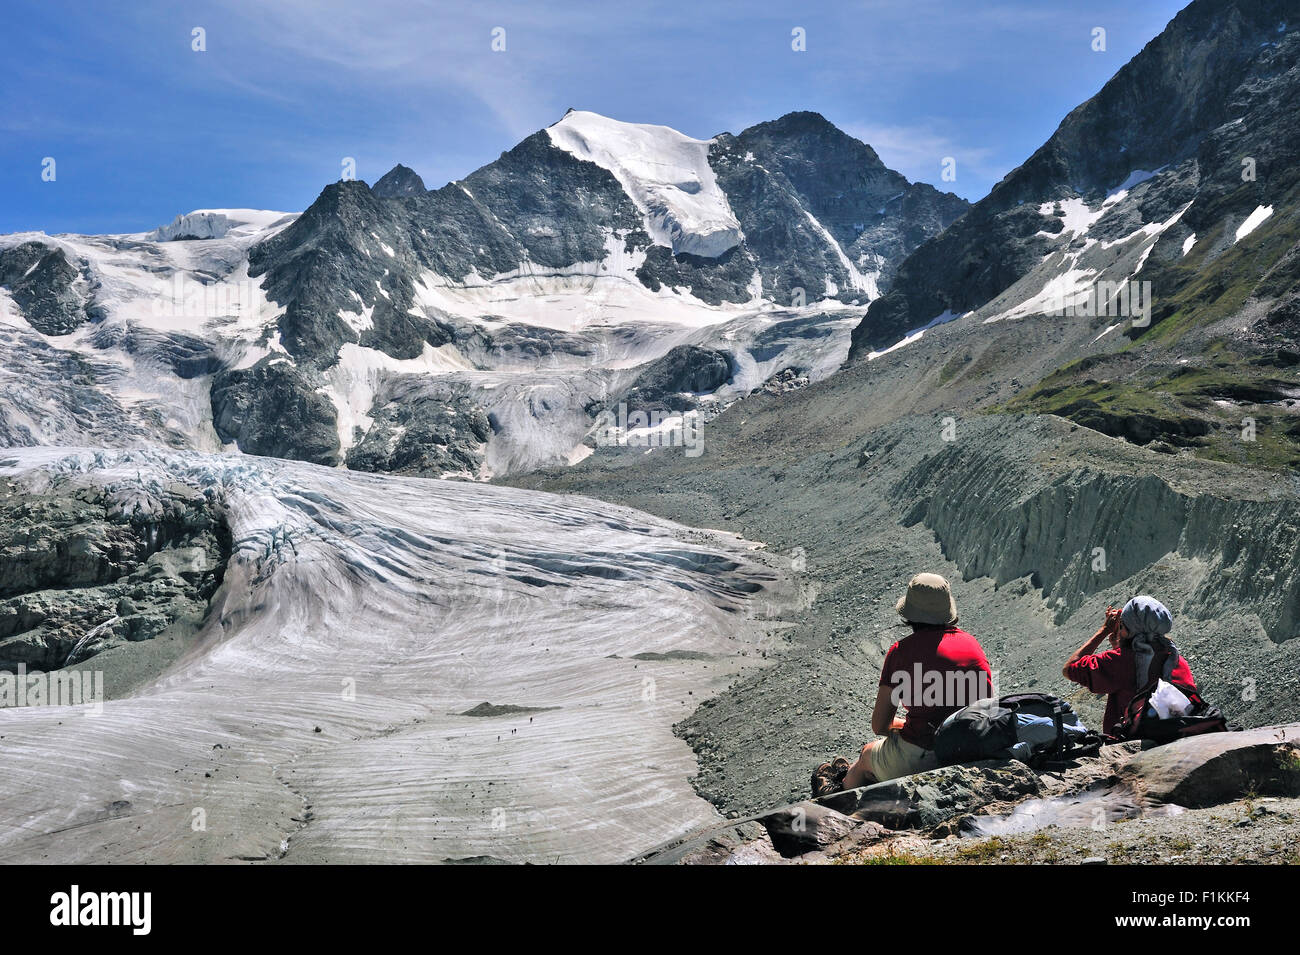 Mountain walkers / Hikers resting with view over the Moiry Glacier in the Pennine Alps, Valais / Wallis, Switzerland - Stock Image